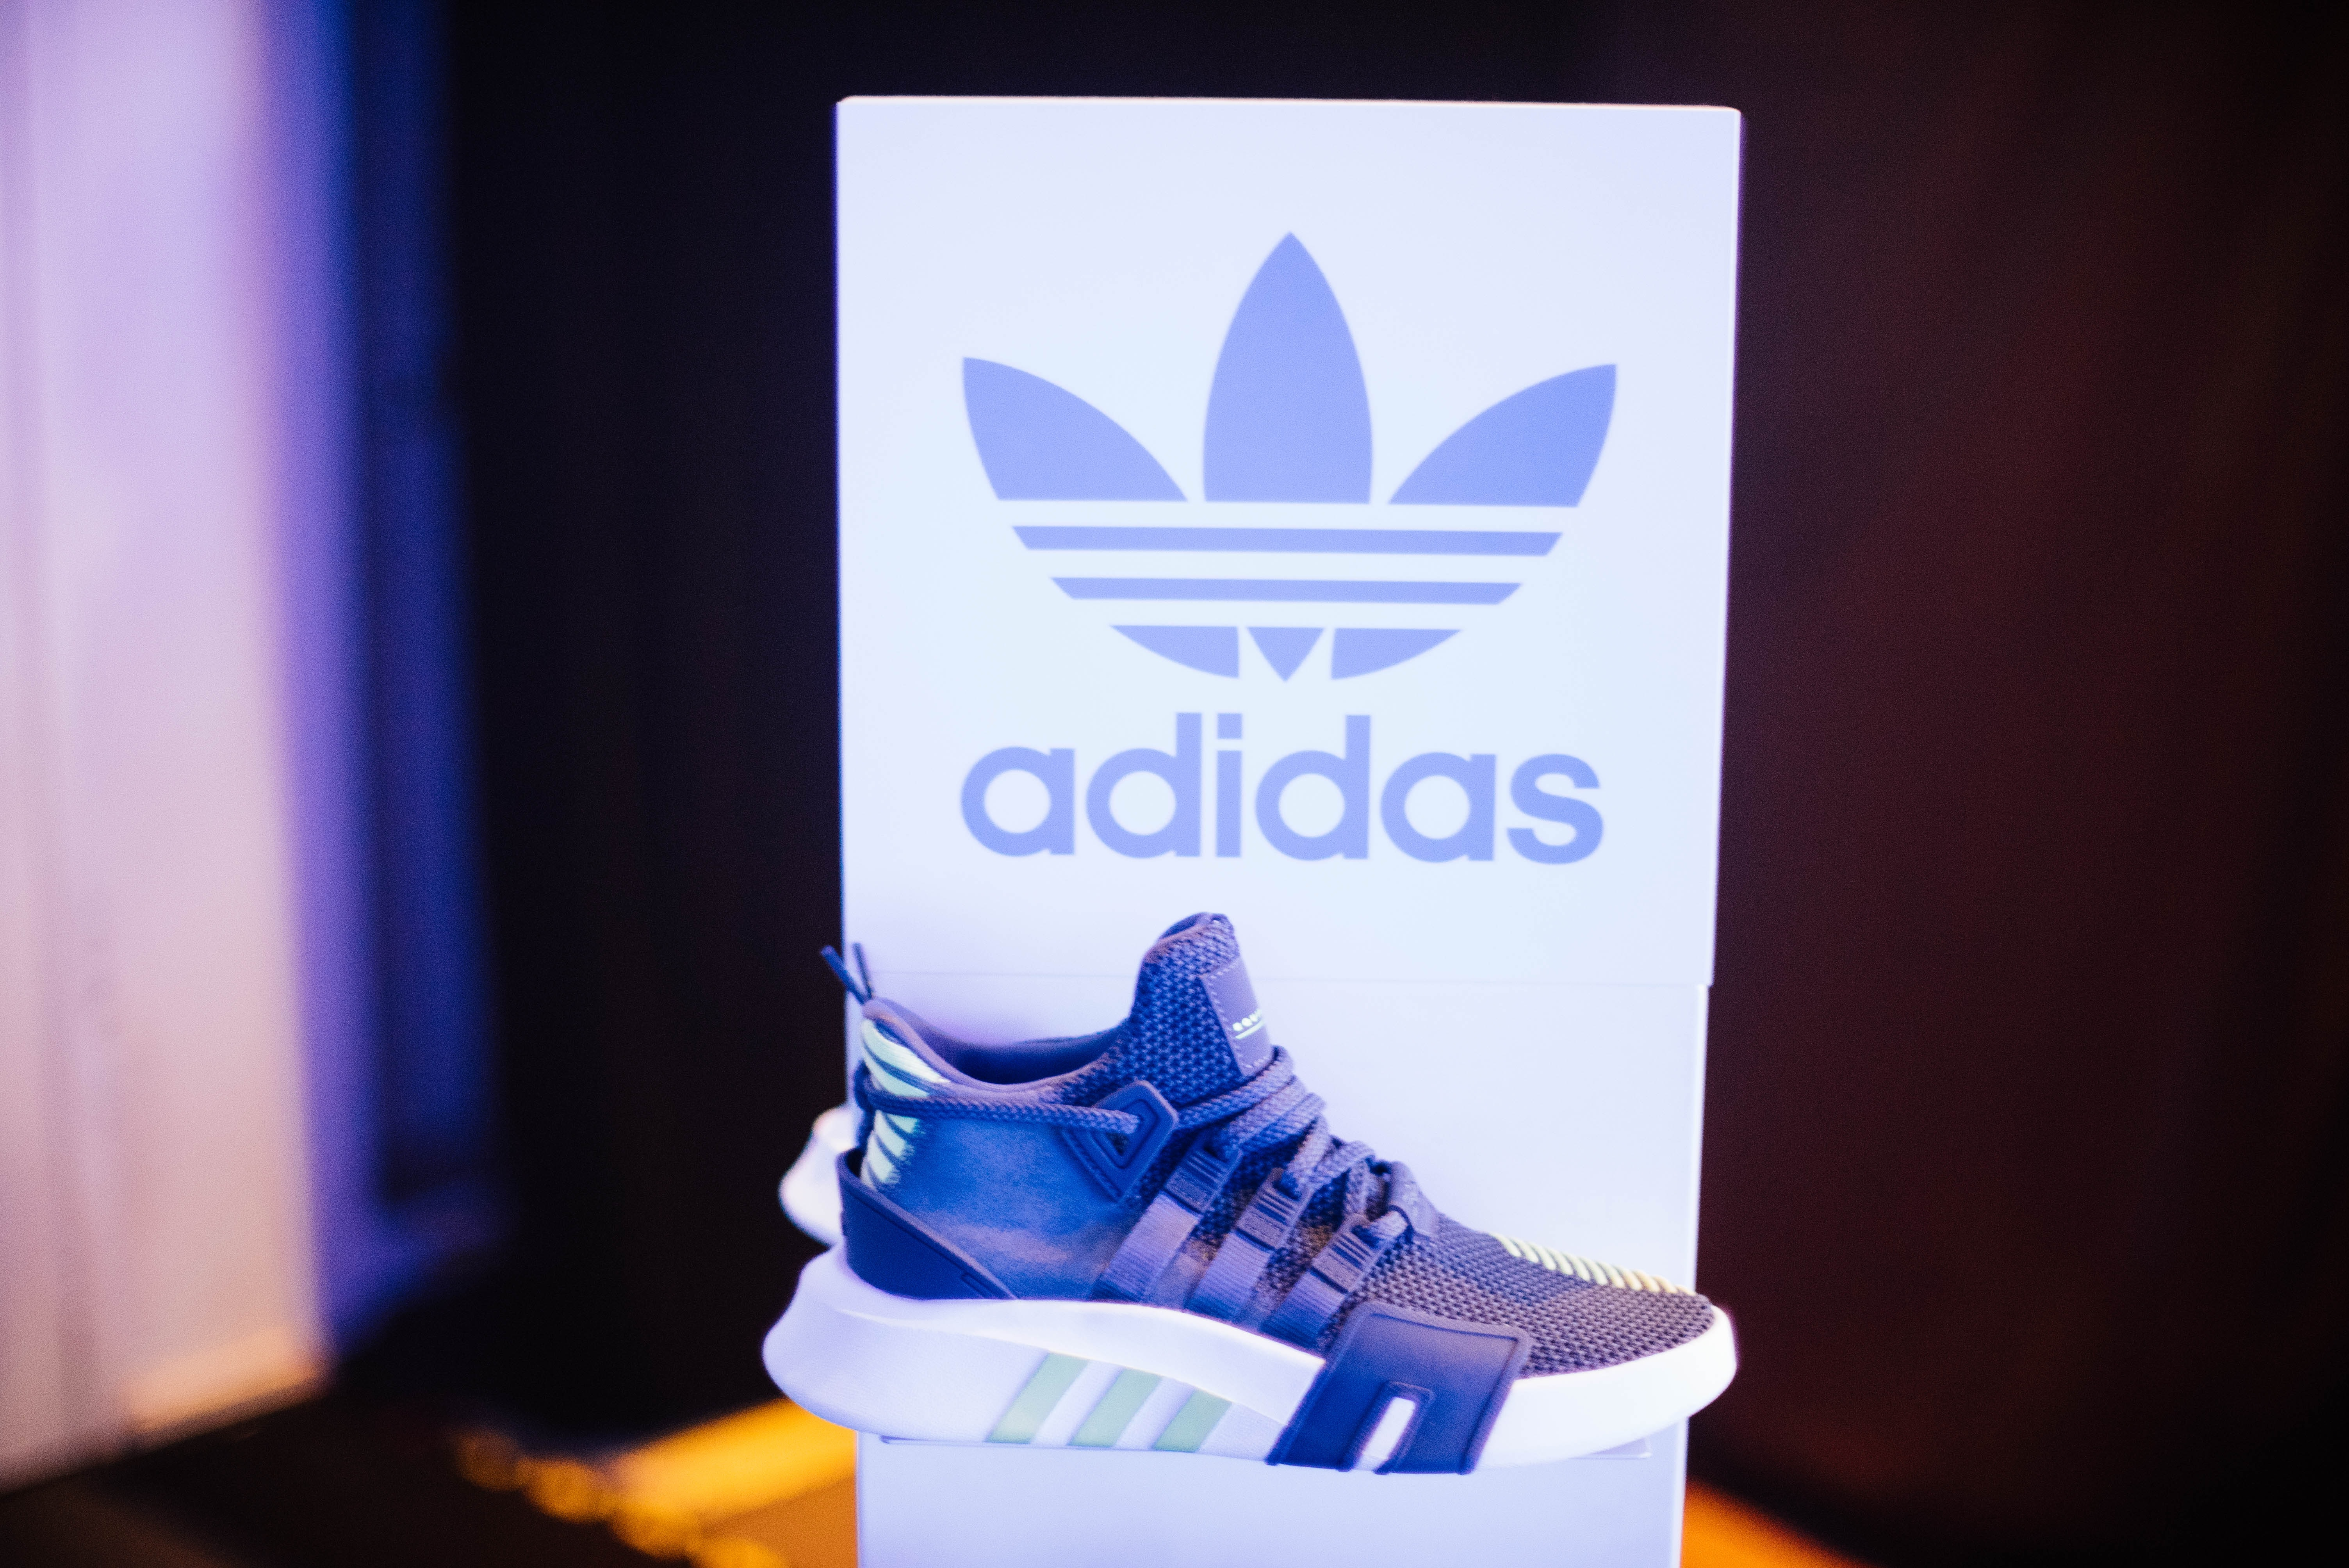 unpaired blue and white adidas running shoe